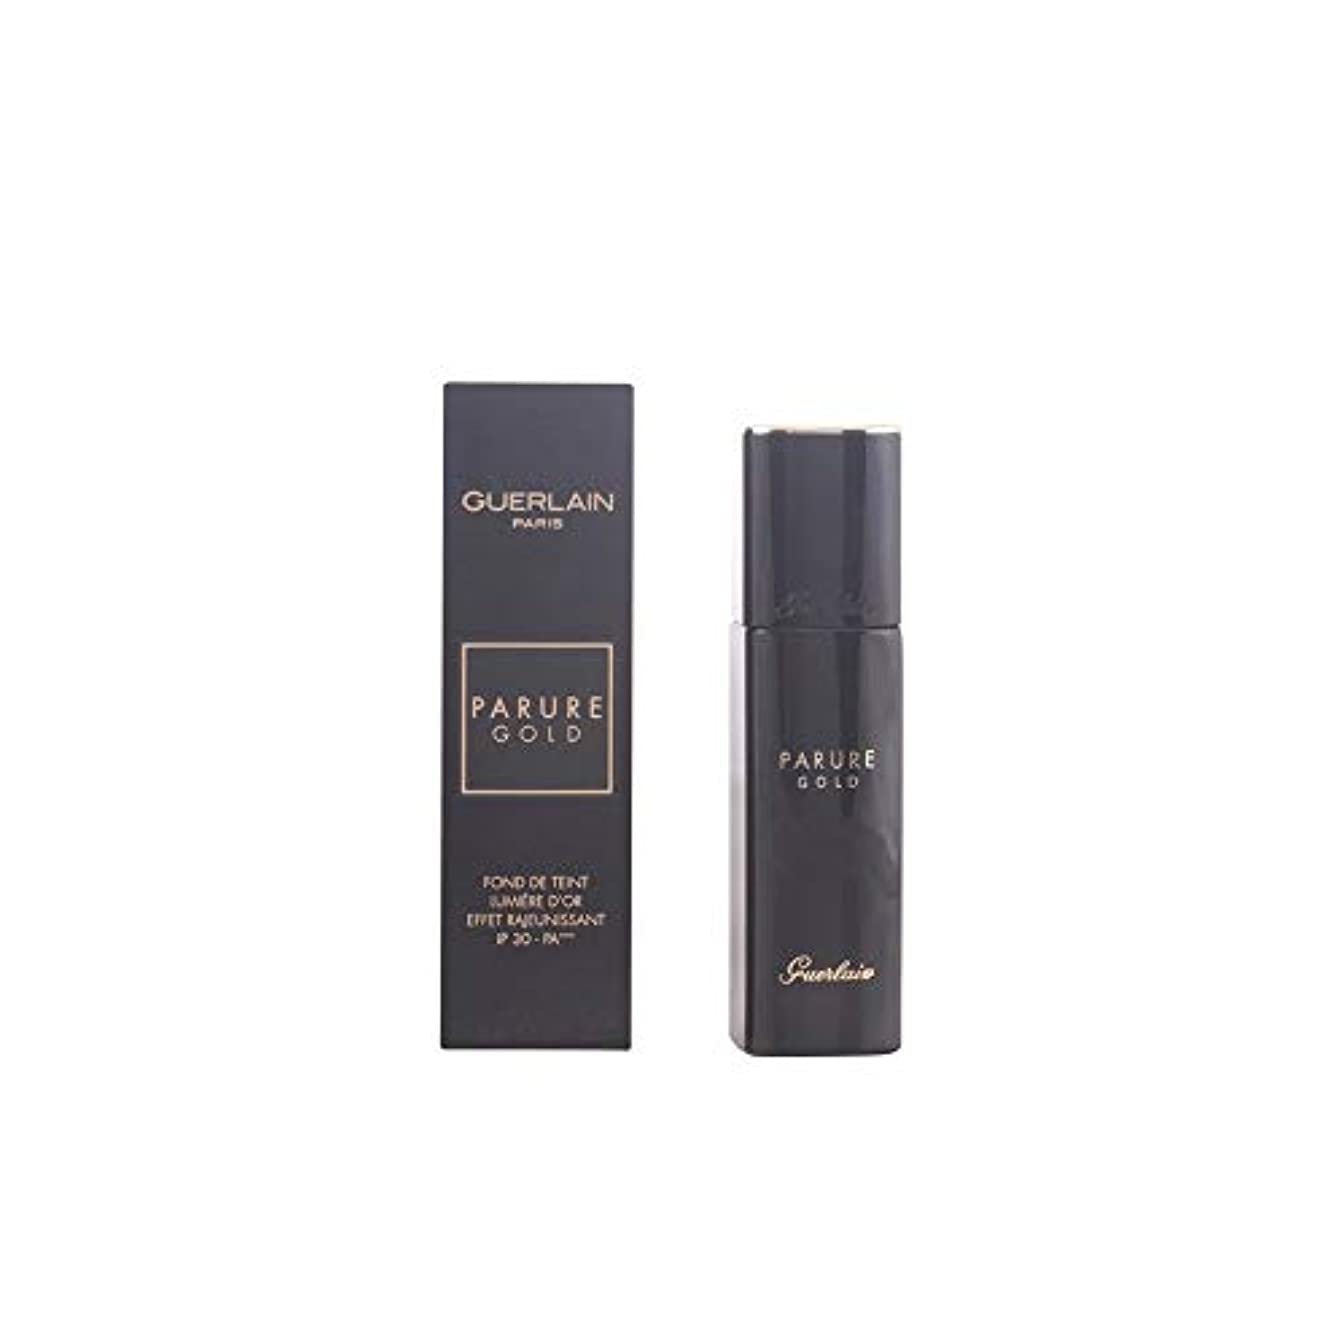 バケツに対応する繁栄ゲラン Parure Gold Rejuvenating Gold Radiance Foundation SPF 30 - # 24 Medium Golden 30ml/1oz並行輸入品